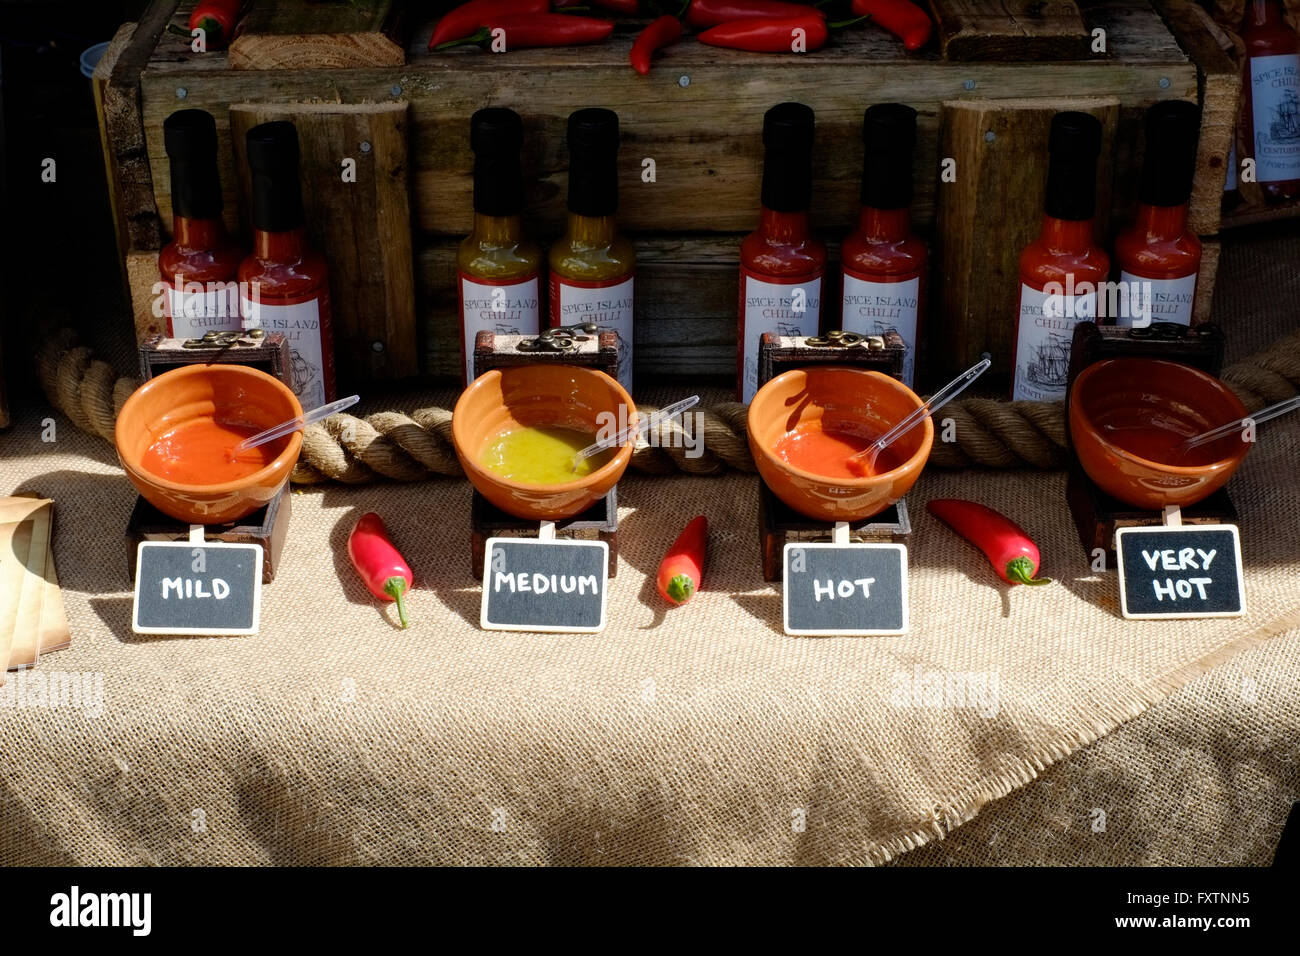 chilli sauces of various strengths for sale at a street market in southsea england uk - Stock Image